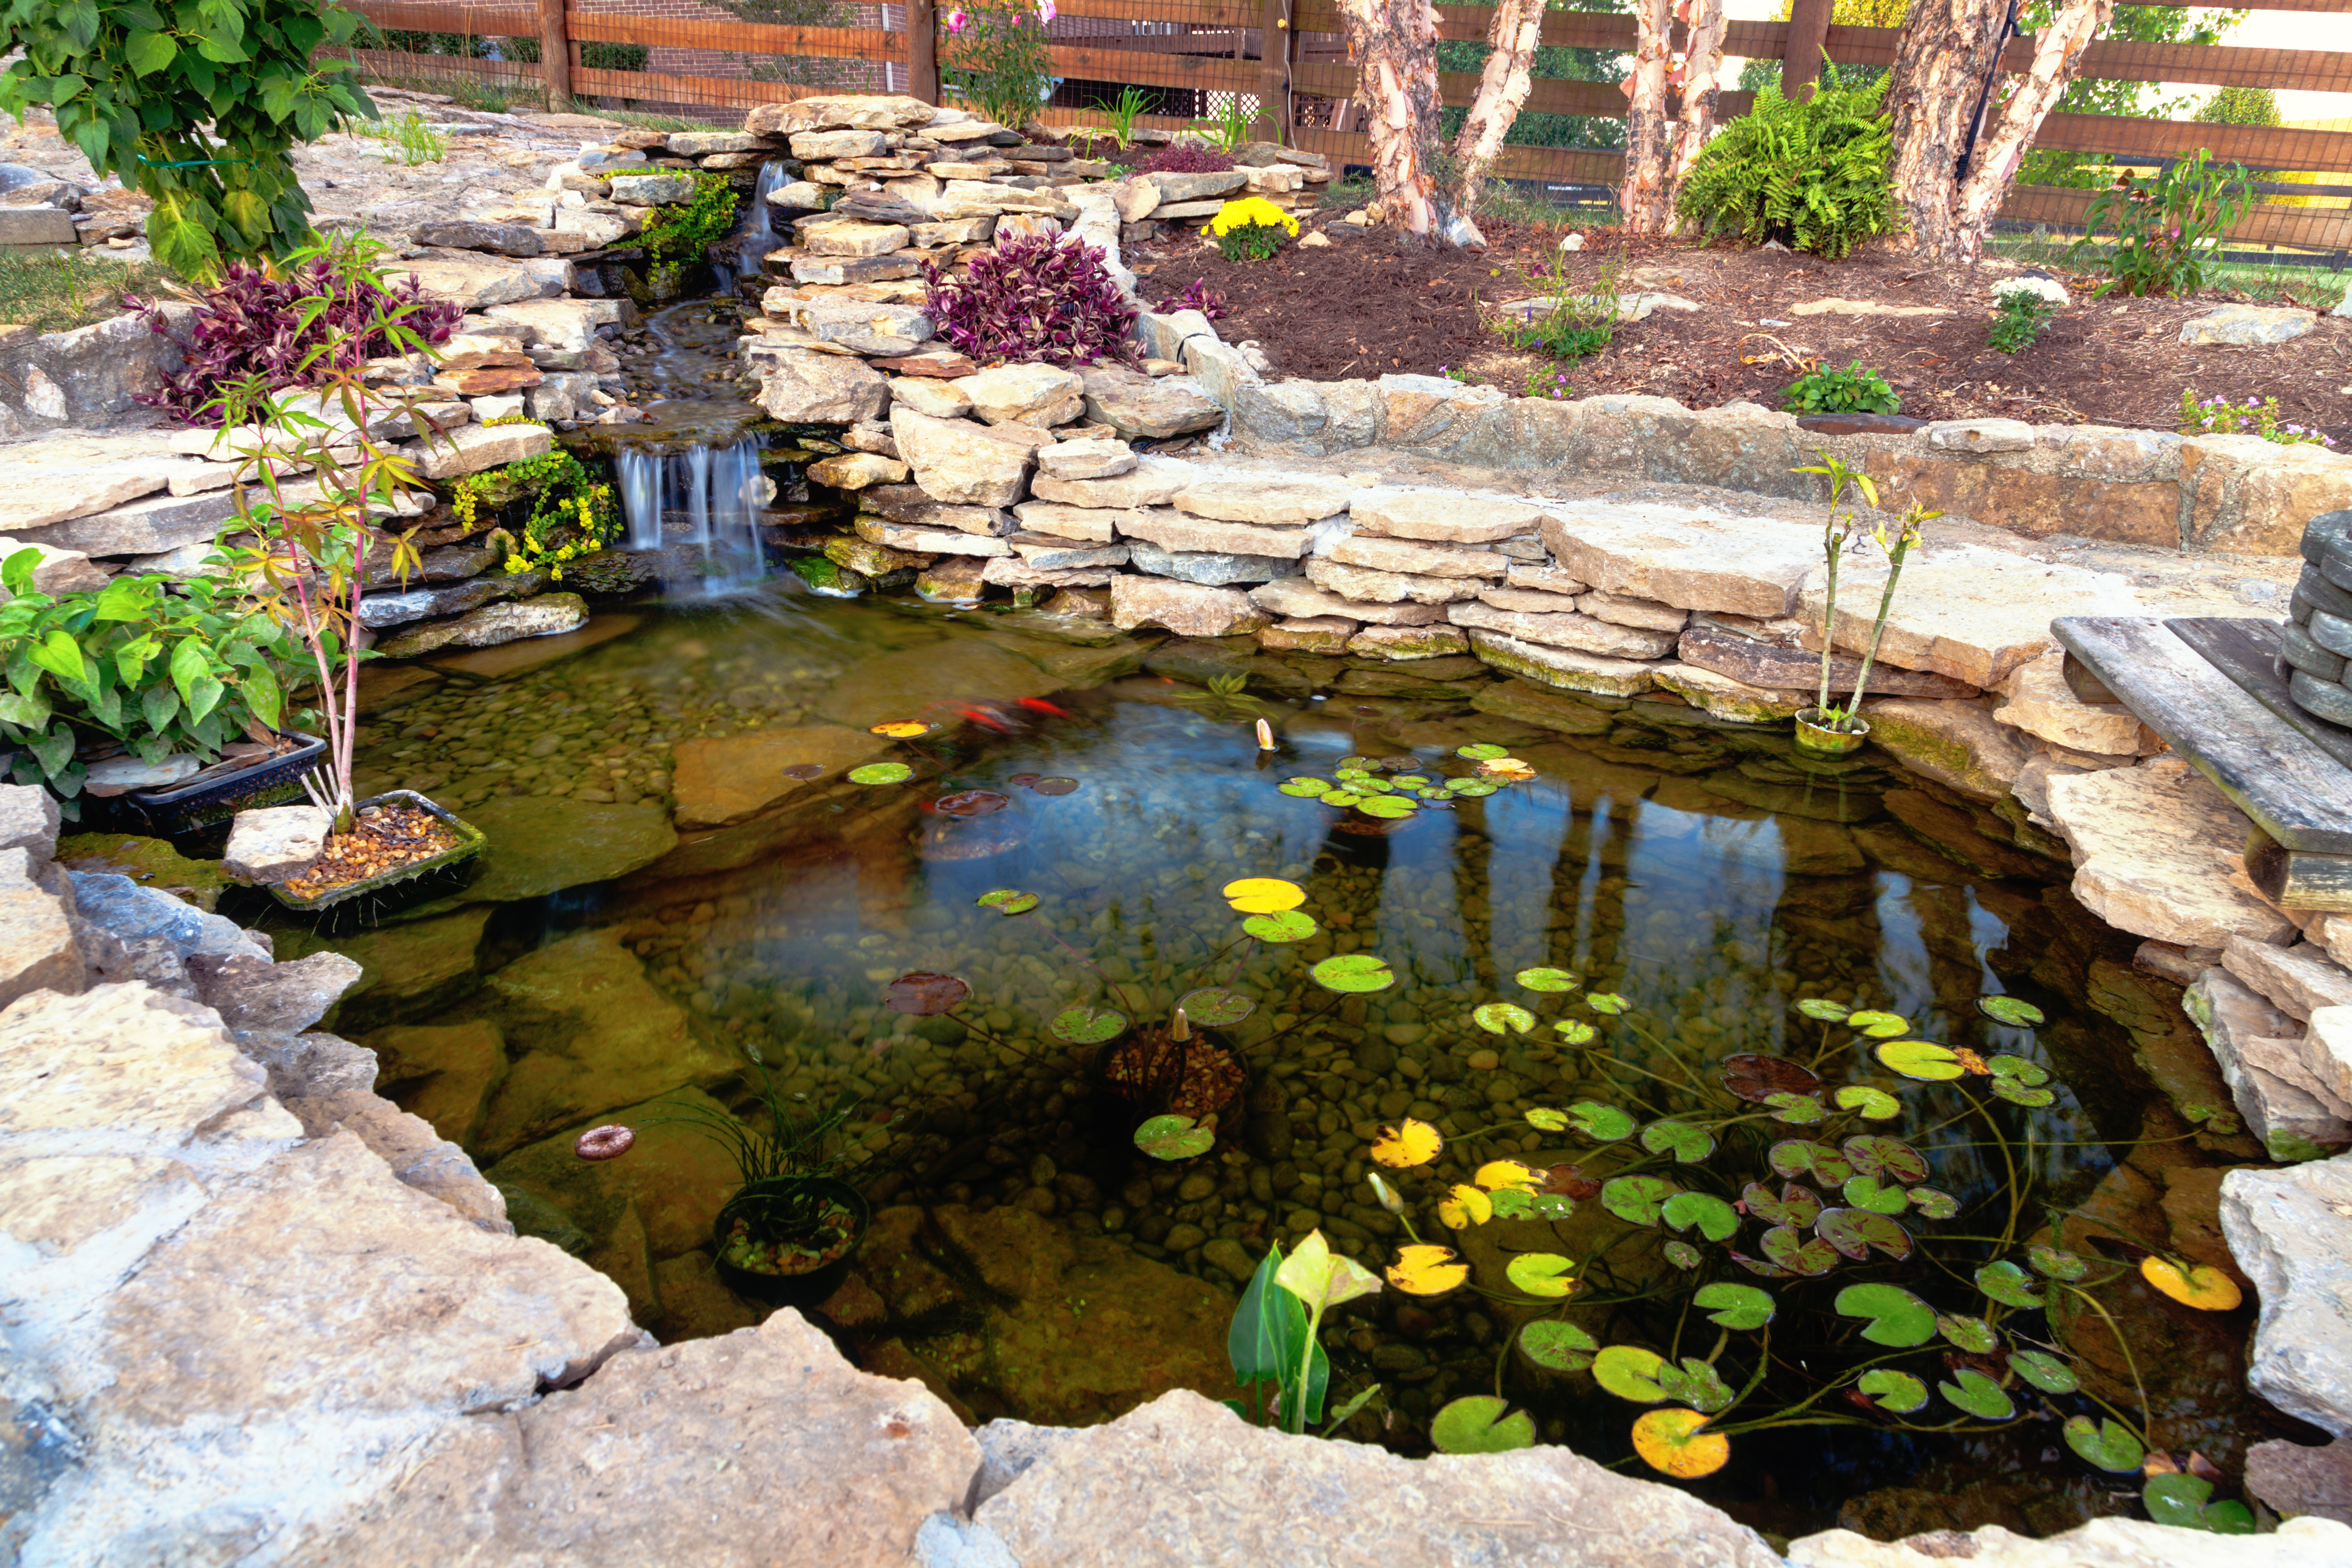 What Is a Safe Way to Kill Weeds Around My Pond That Won't Harm My